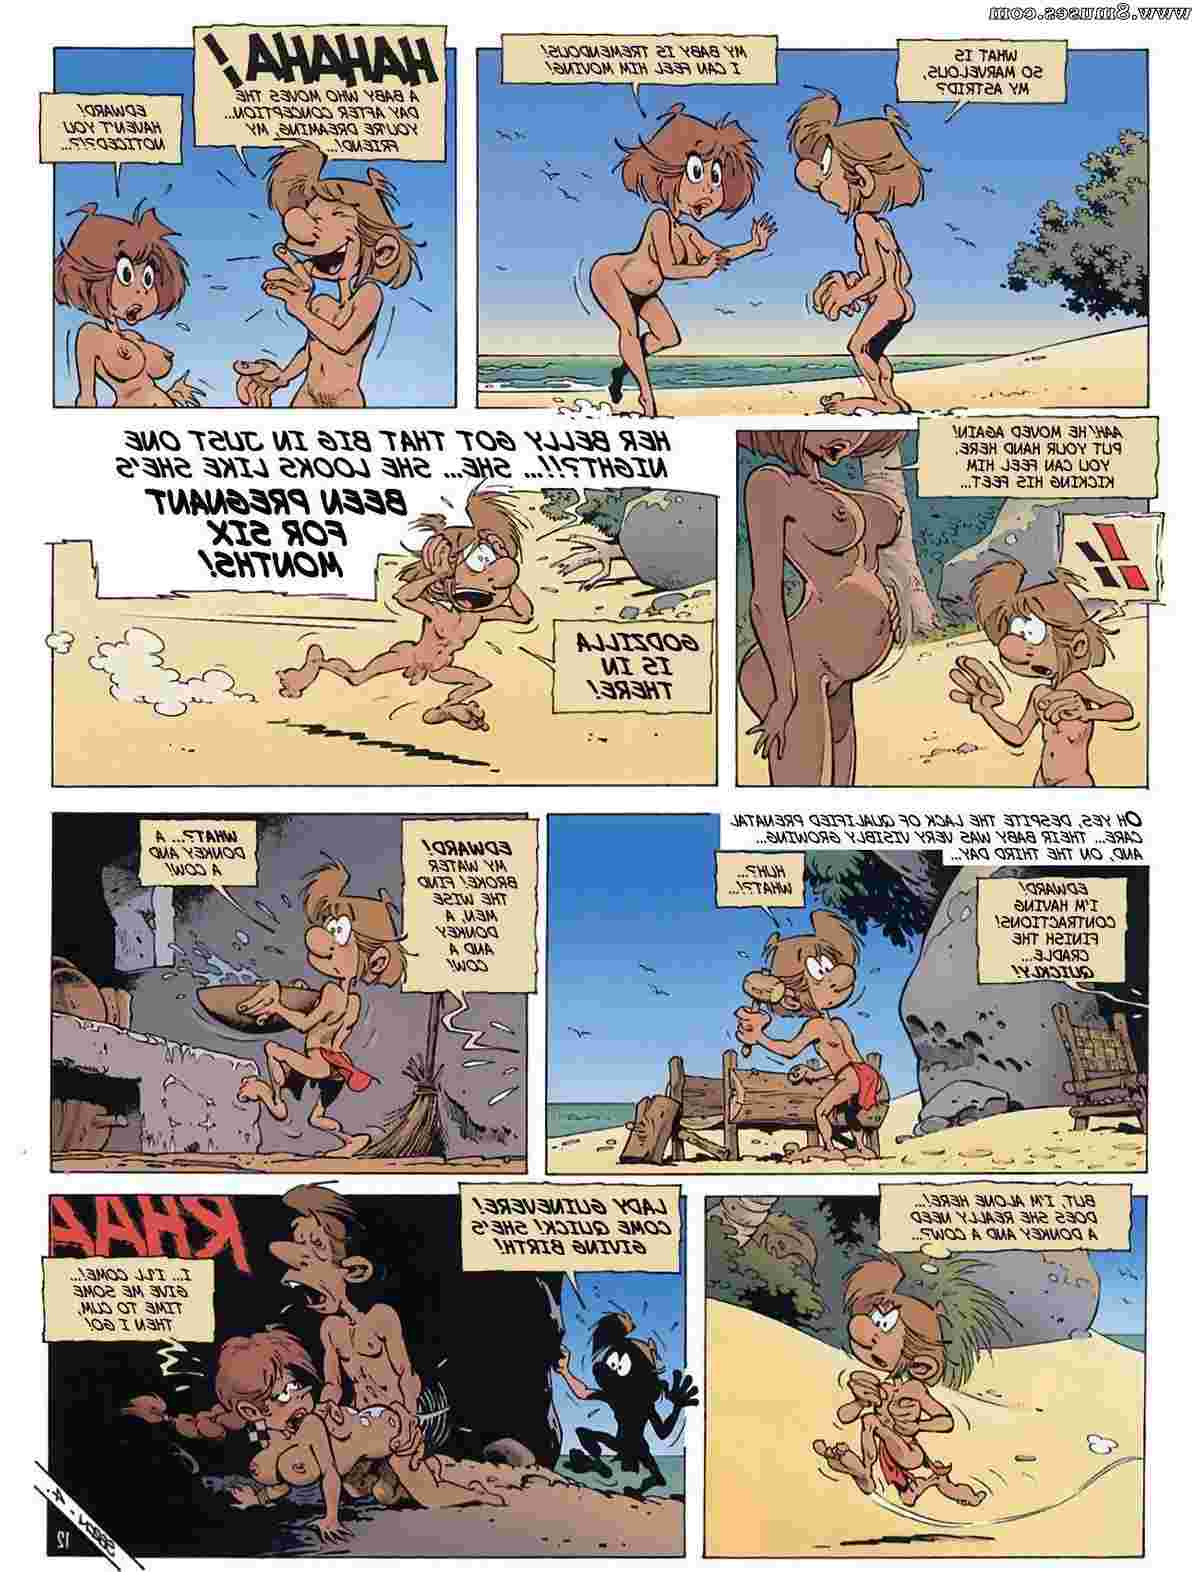 AllPornComics_com-Comics/The-Mini-Girls The_Mini_Girls__8muses_-_Sex_and_Porn_Comics_15.jpg